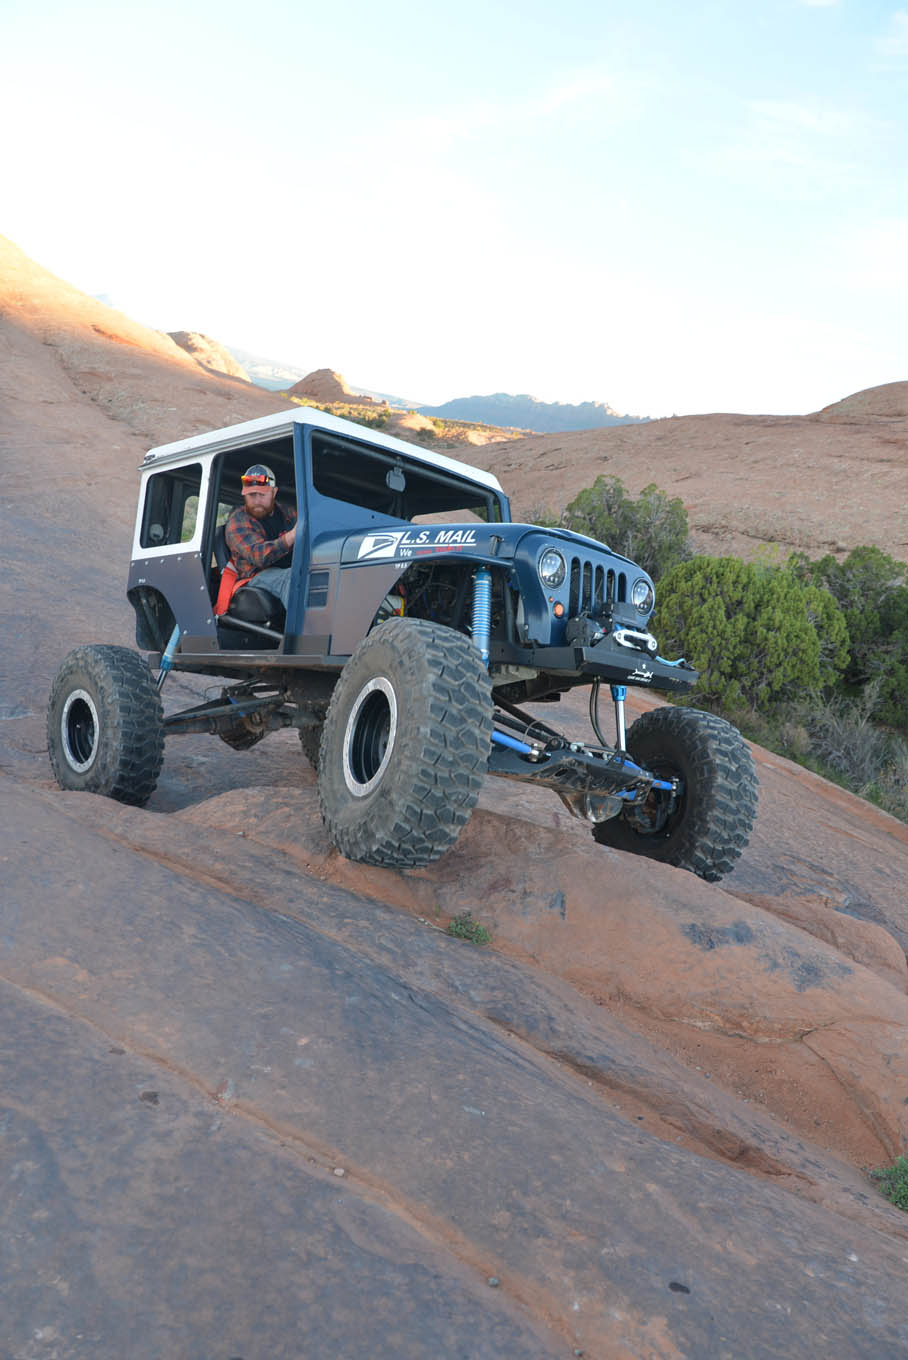 postal jeep ls mail right hand drive gallery 008